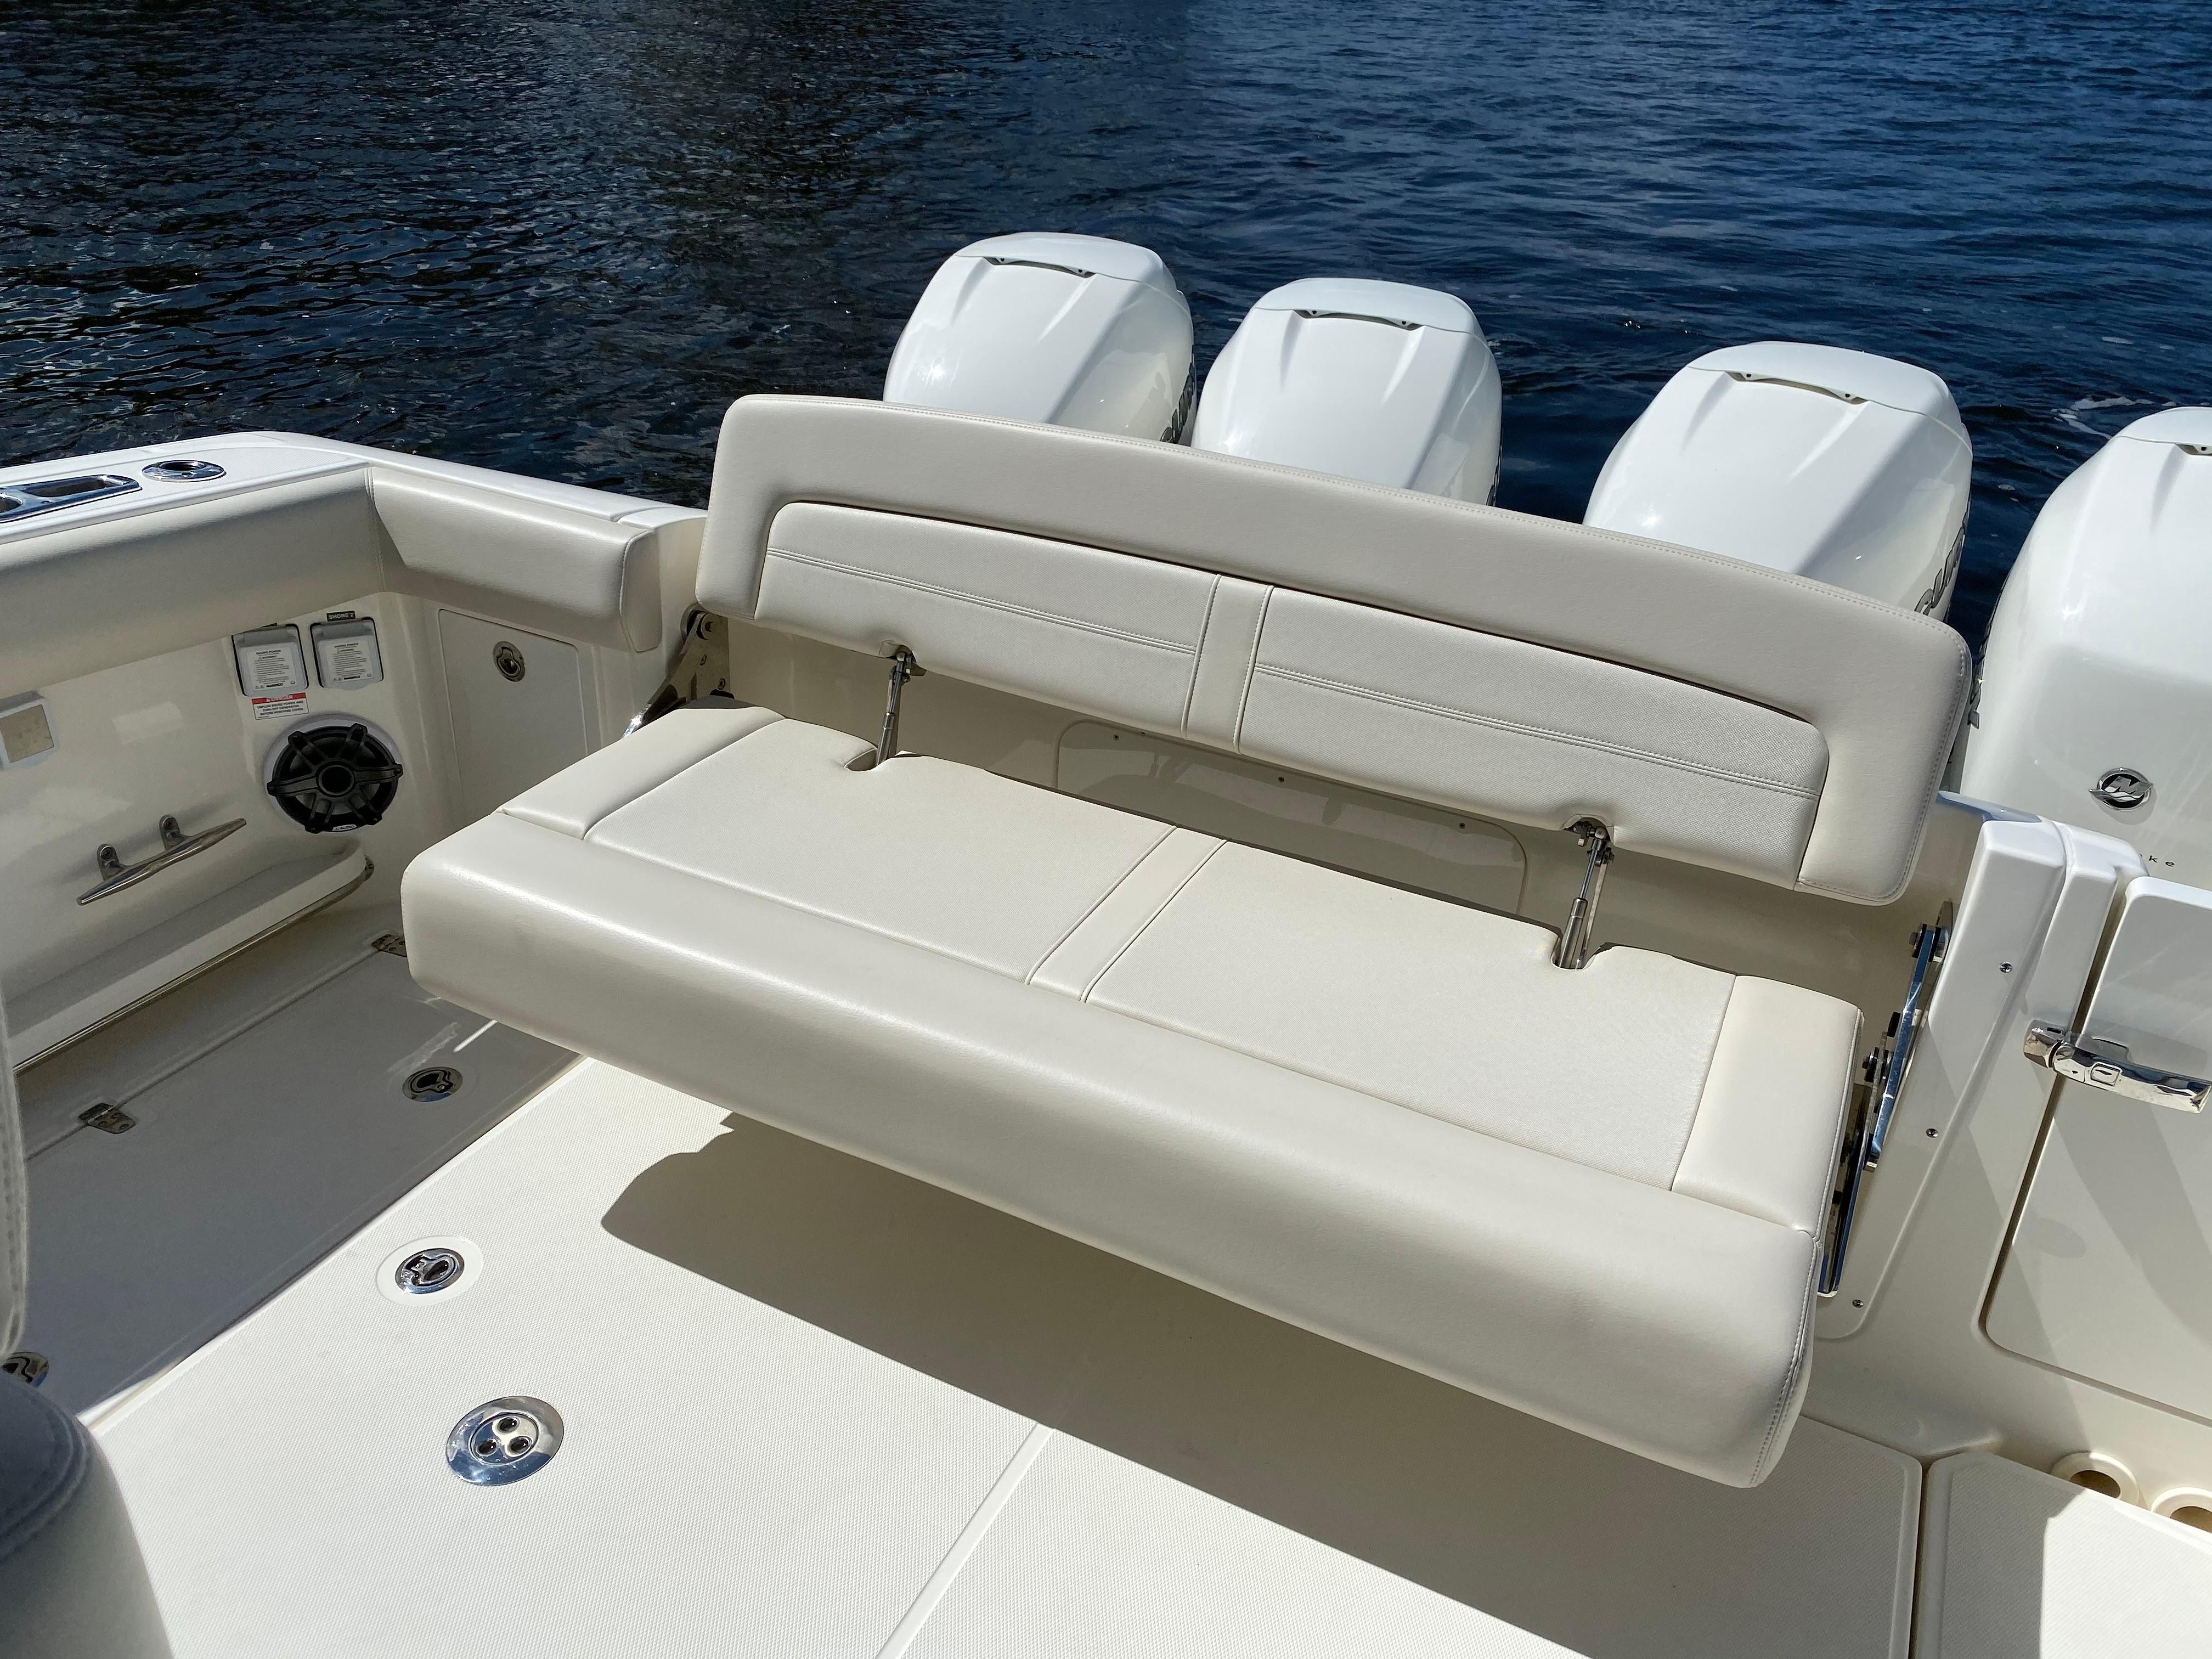 2020 Boston Whaler                                                              380 Realm Image Thumbnail #41